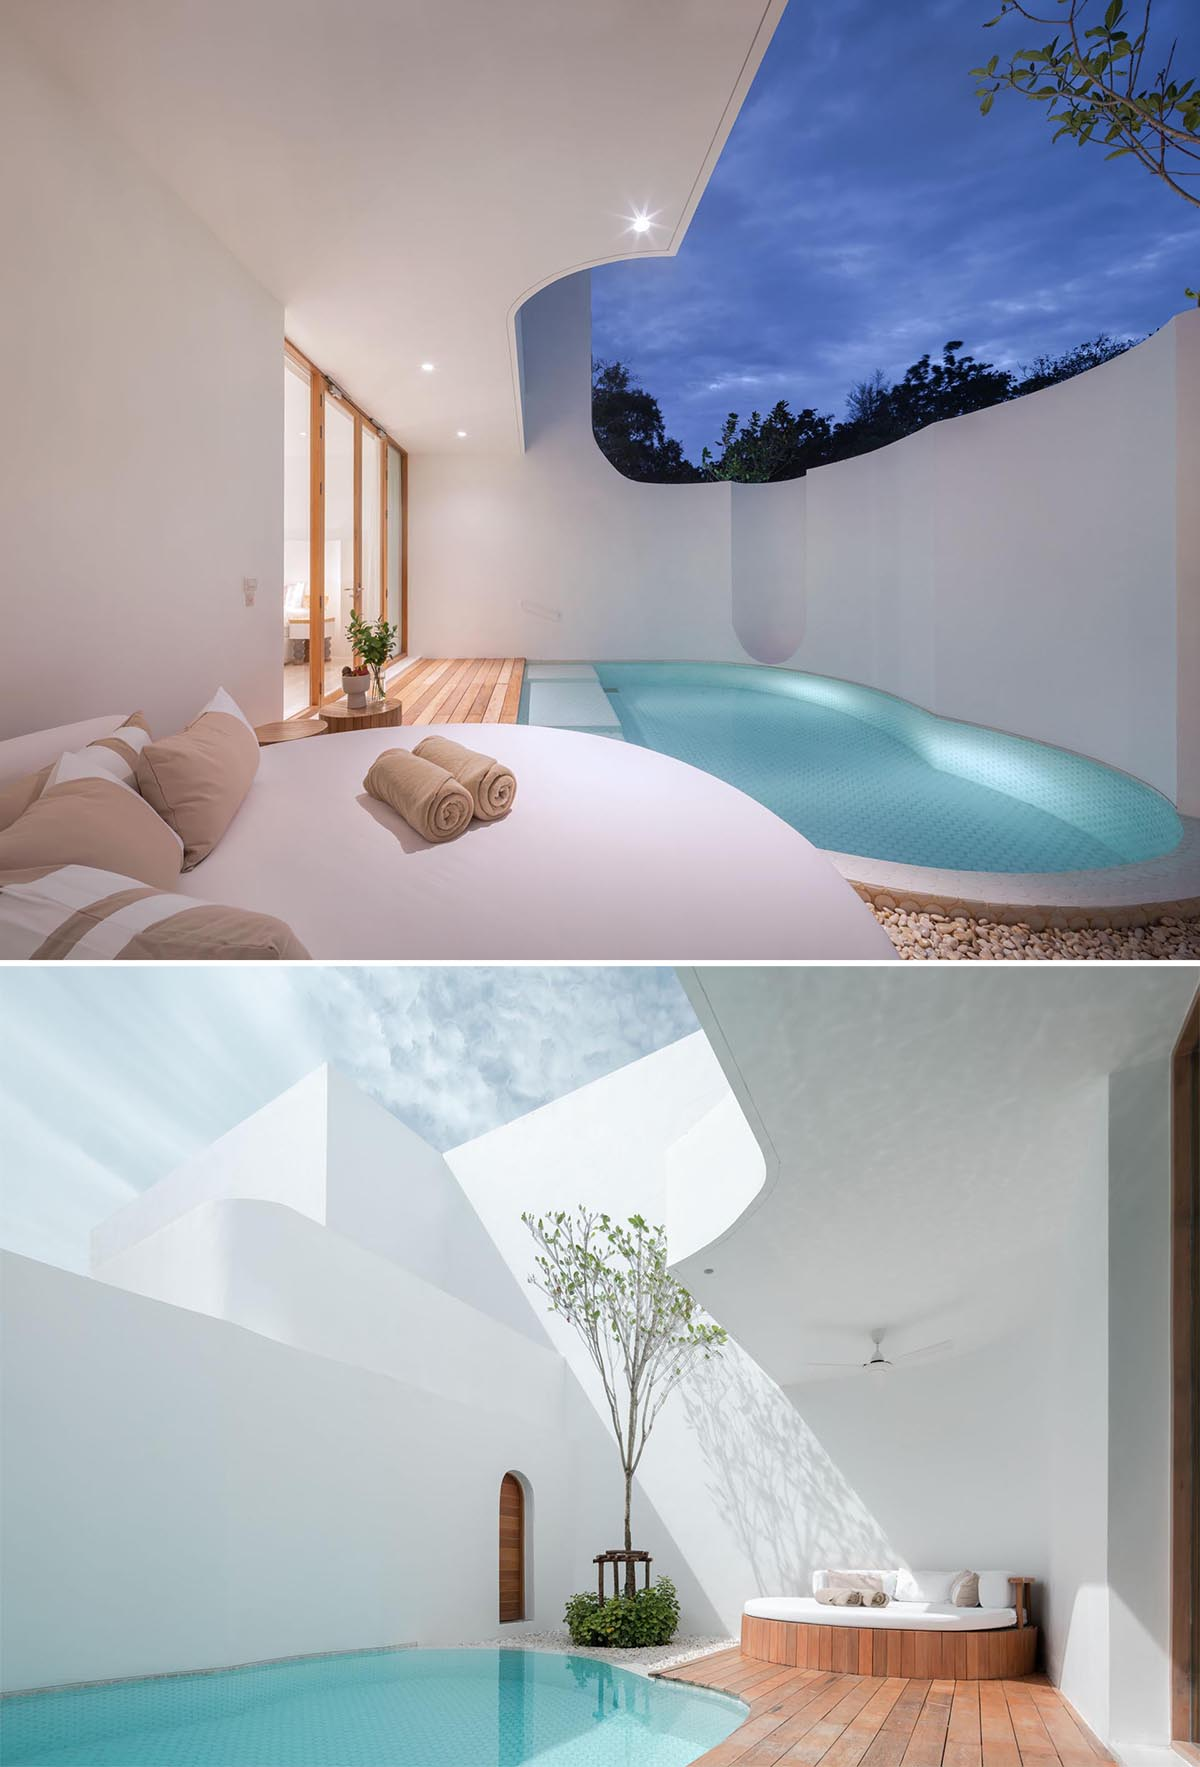 A hotel room with a small swimming pool and covered seating area.